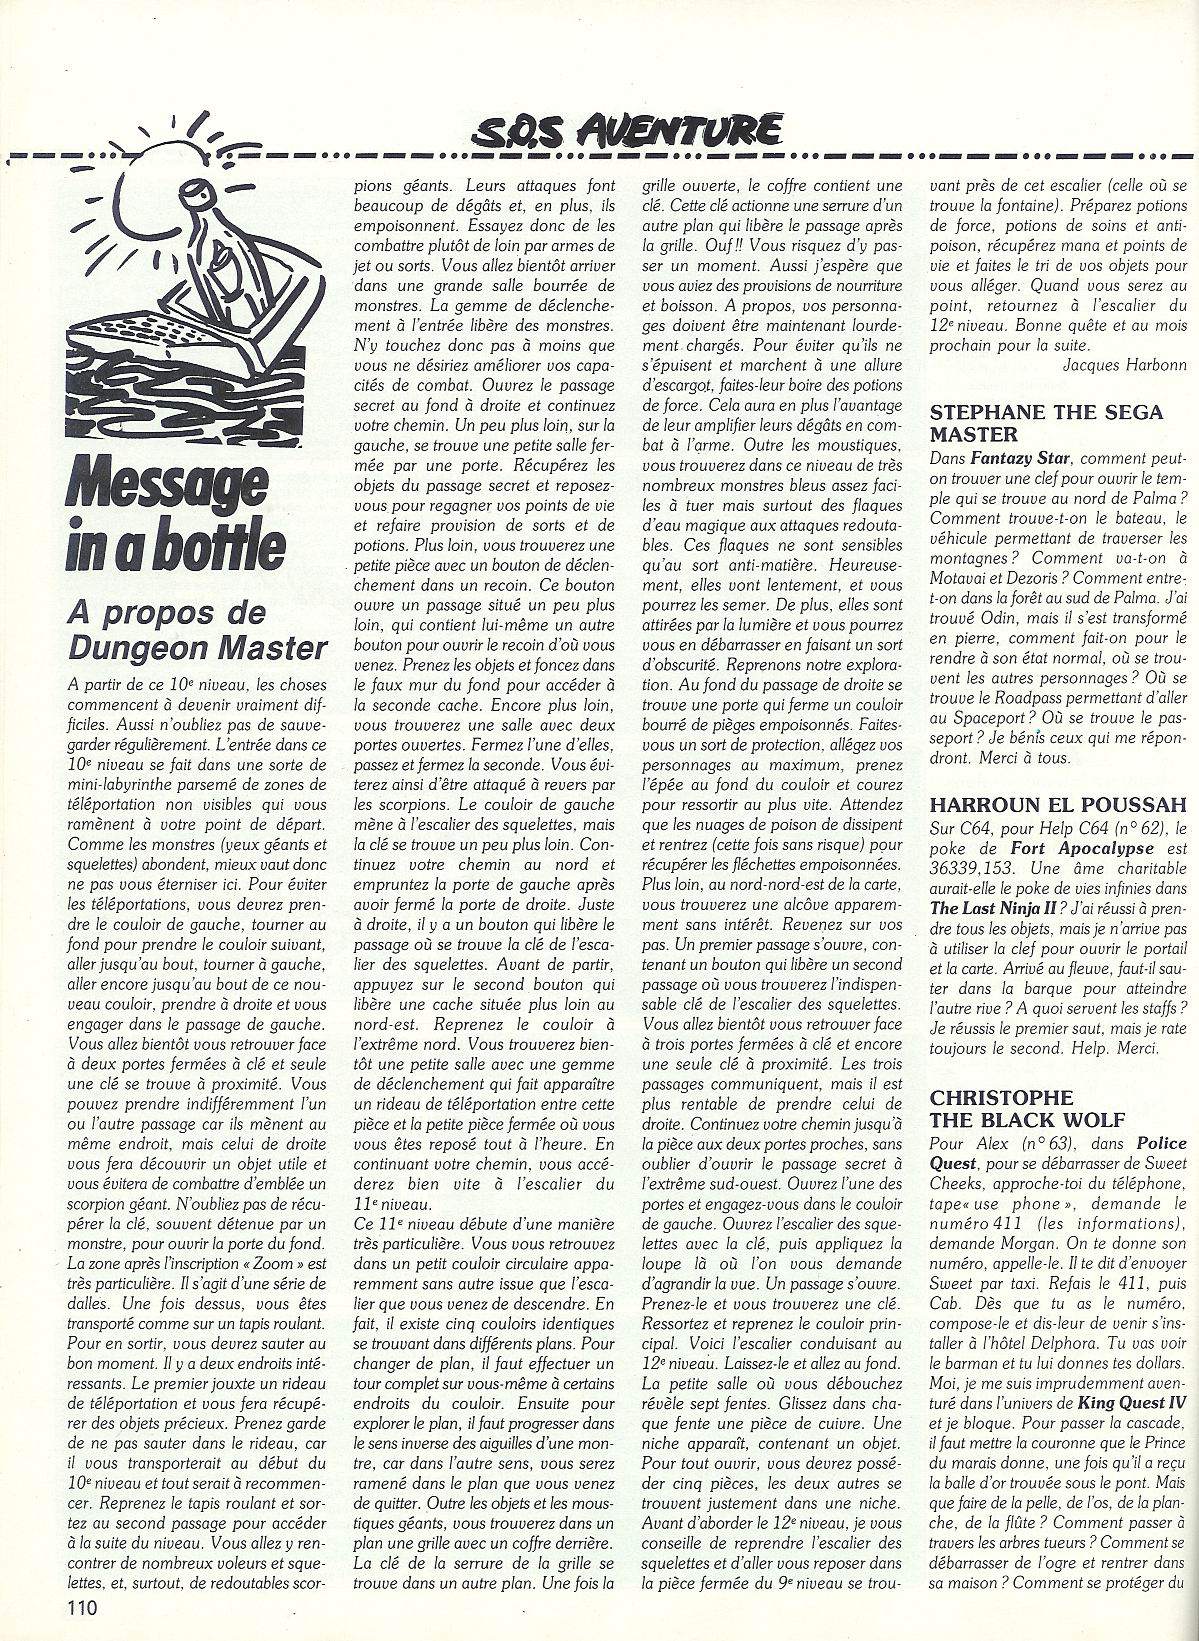 Dungeon Master Hints published in French magazine 'Tilt', Issue #65, April 1989, Page 110